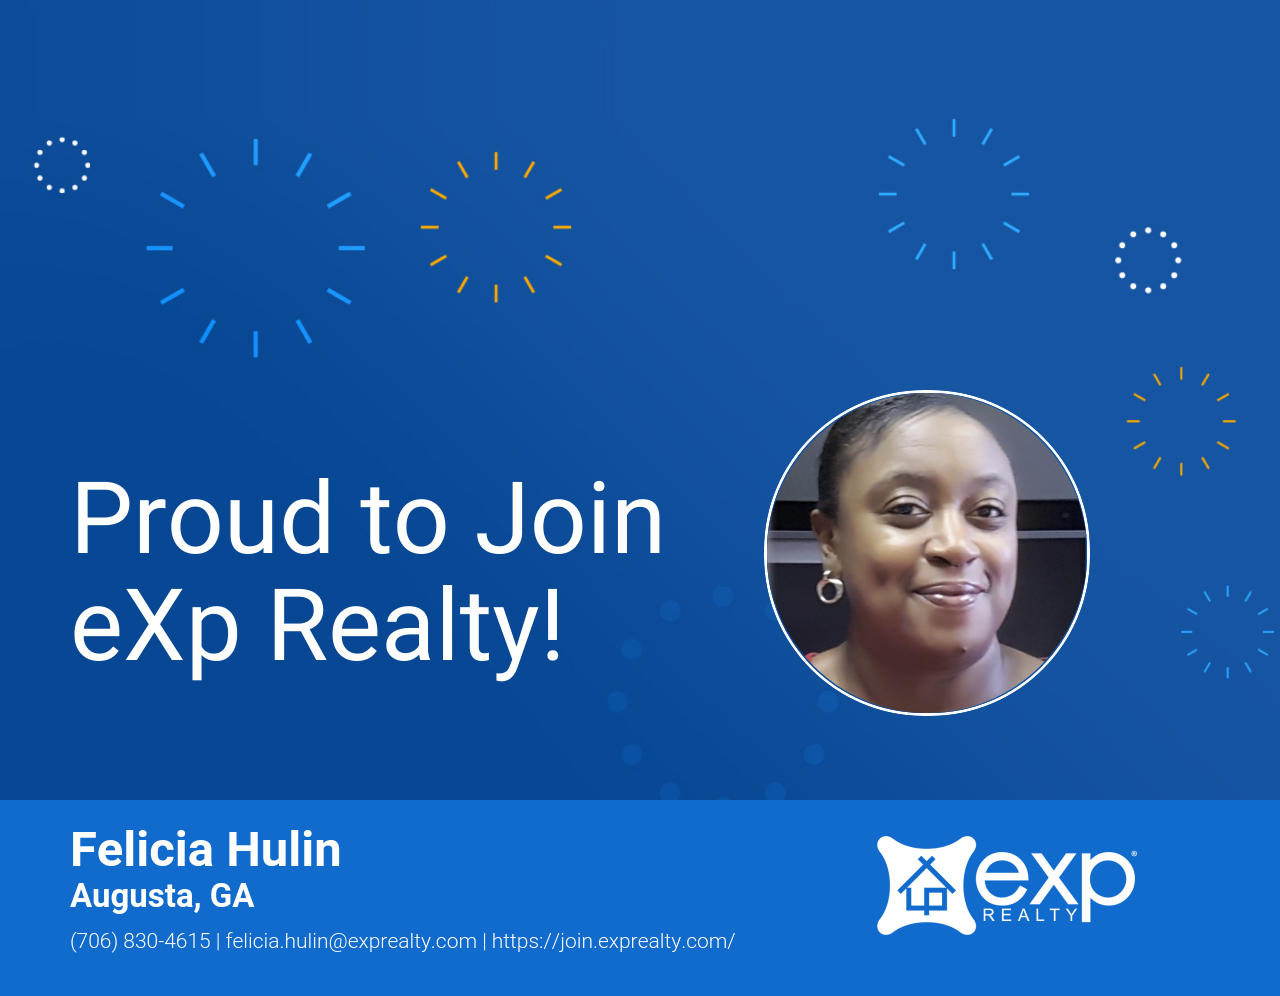 Welcome to eXp Realty Felicia Hulin!